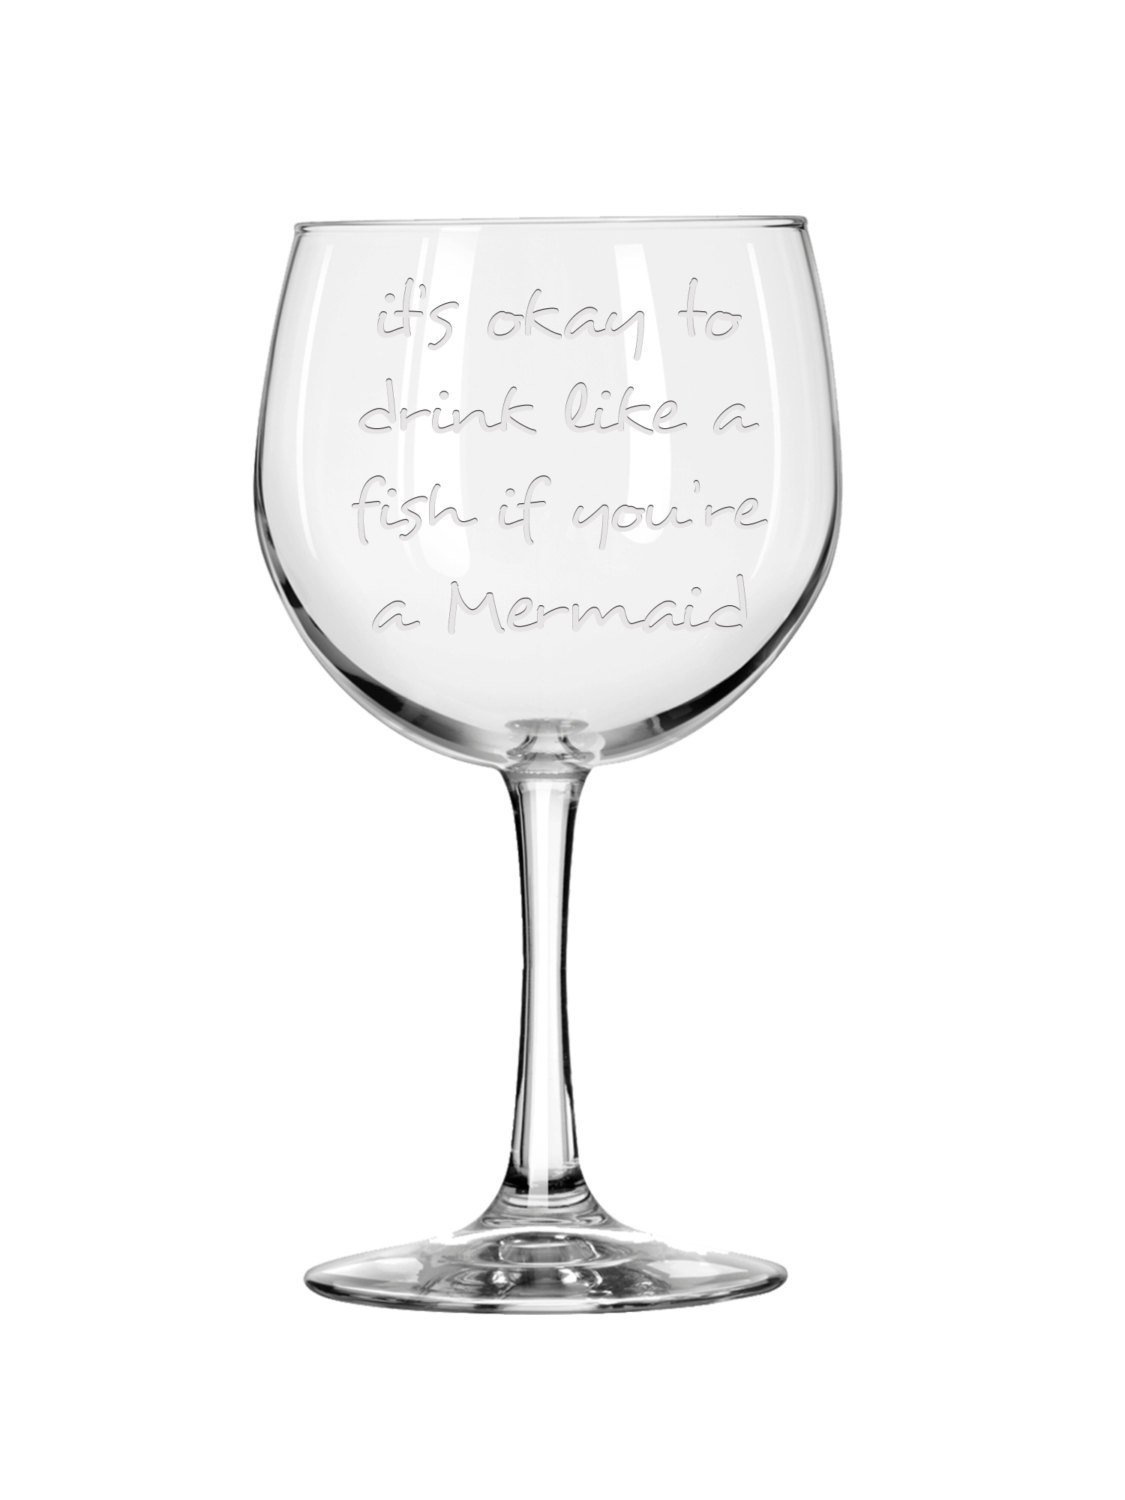 Amazon.com: Personalized Engraved Wine Glass,Mermaid Wine Glass ...